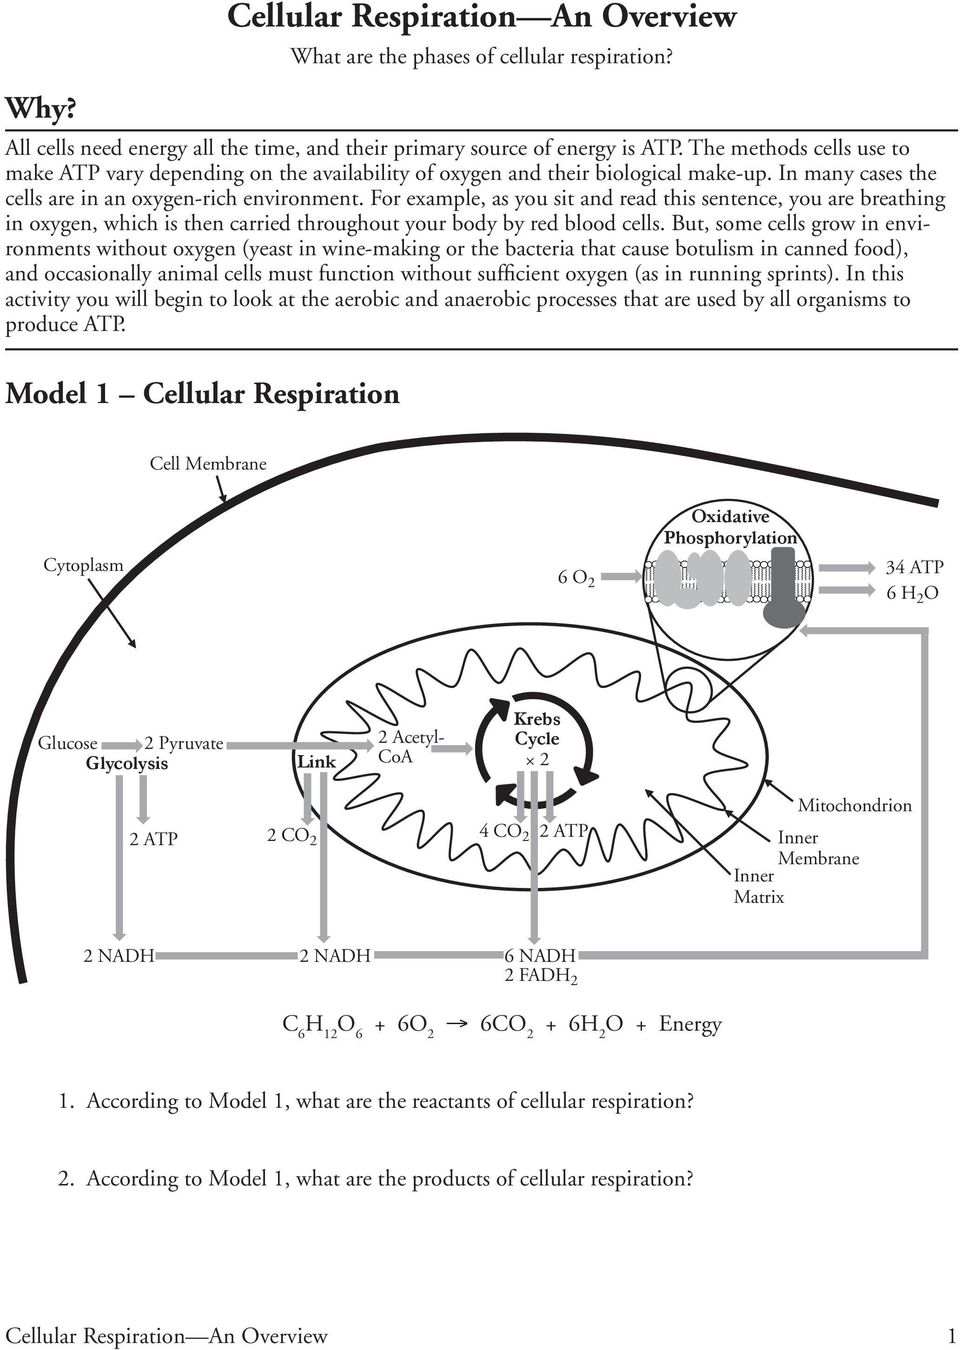 Cellular Respiration An Overview Pdf Free Download